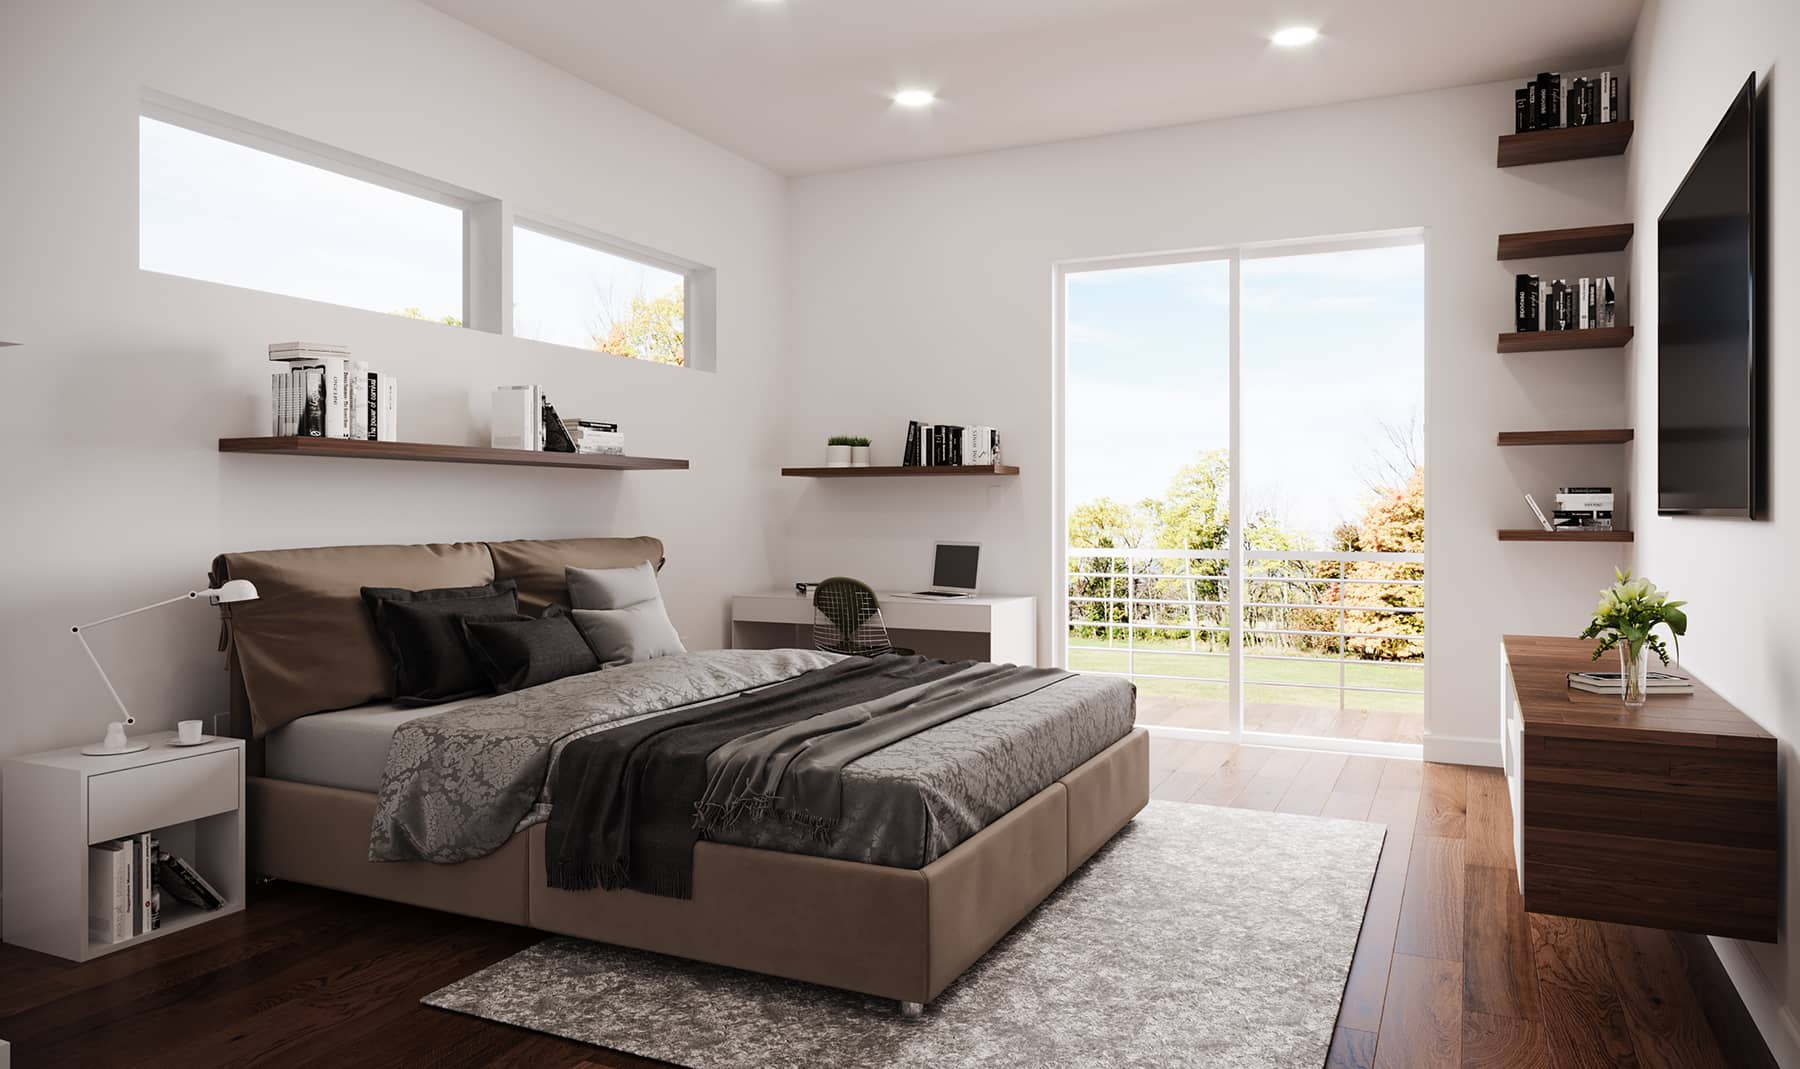 Welcome Homes - Medium | Secondary Suite | Bedroom